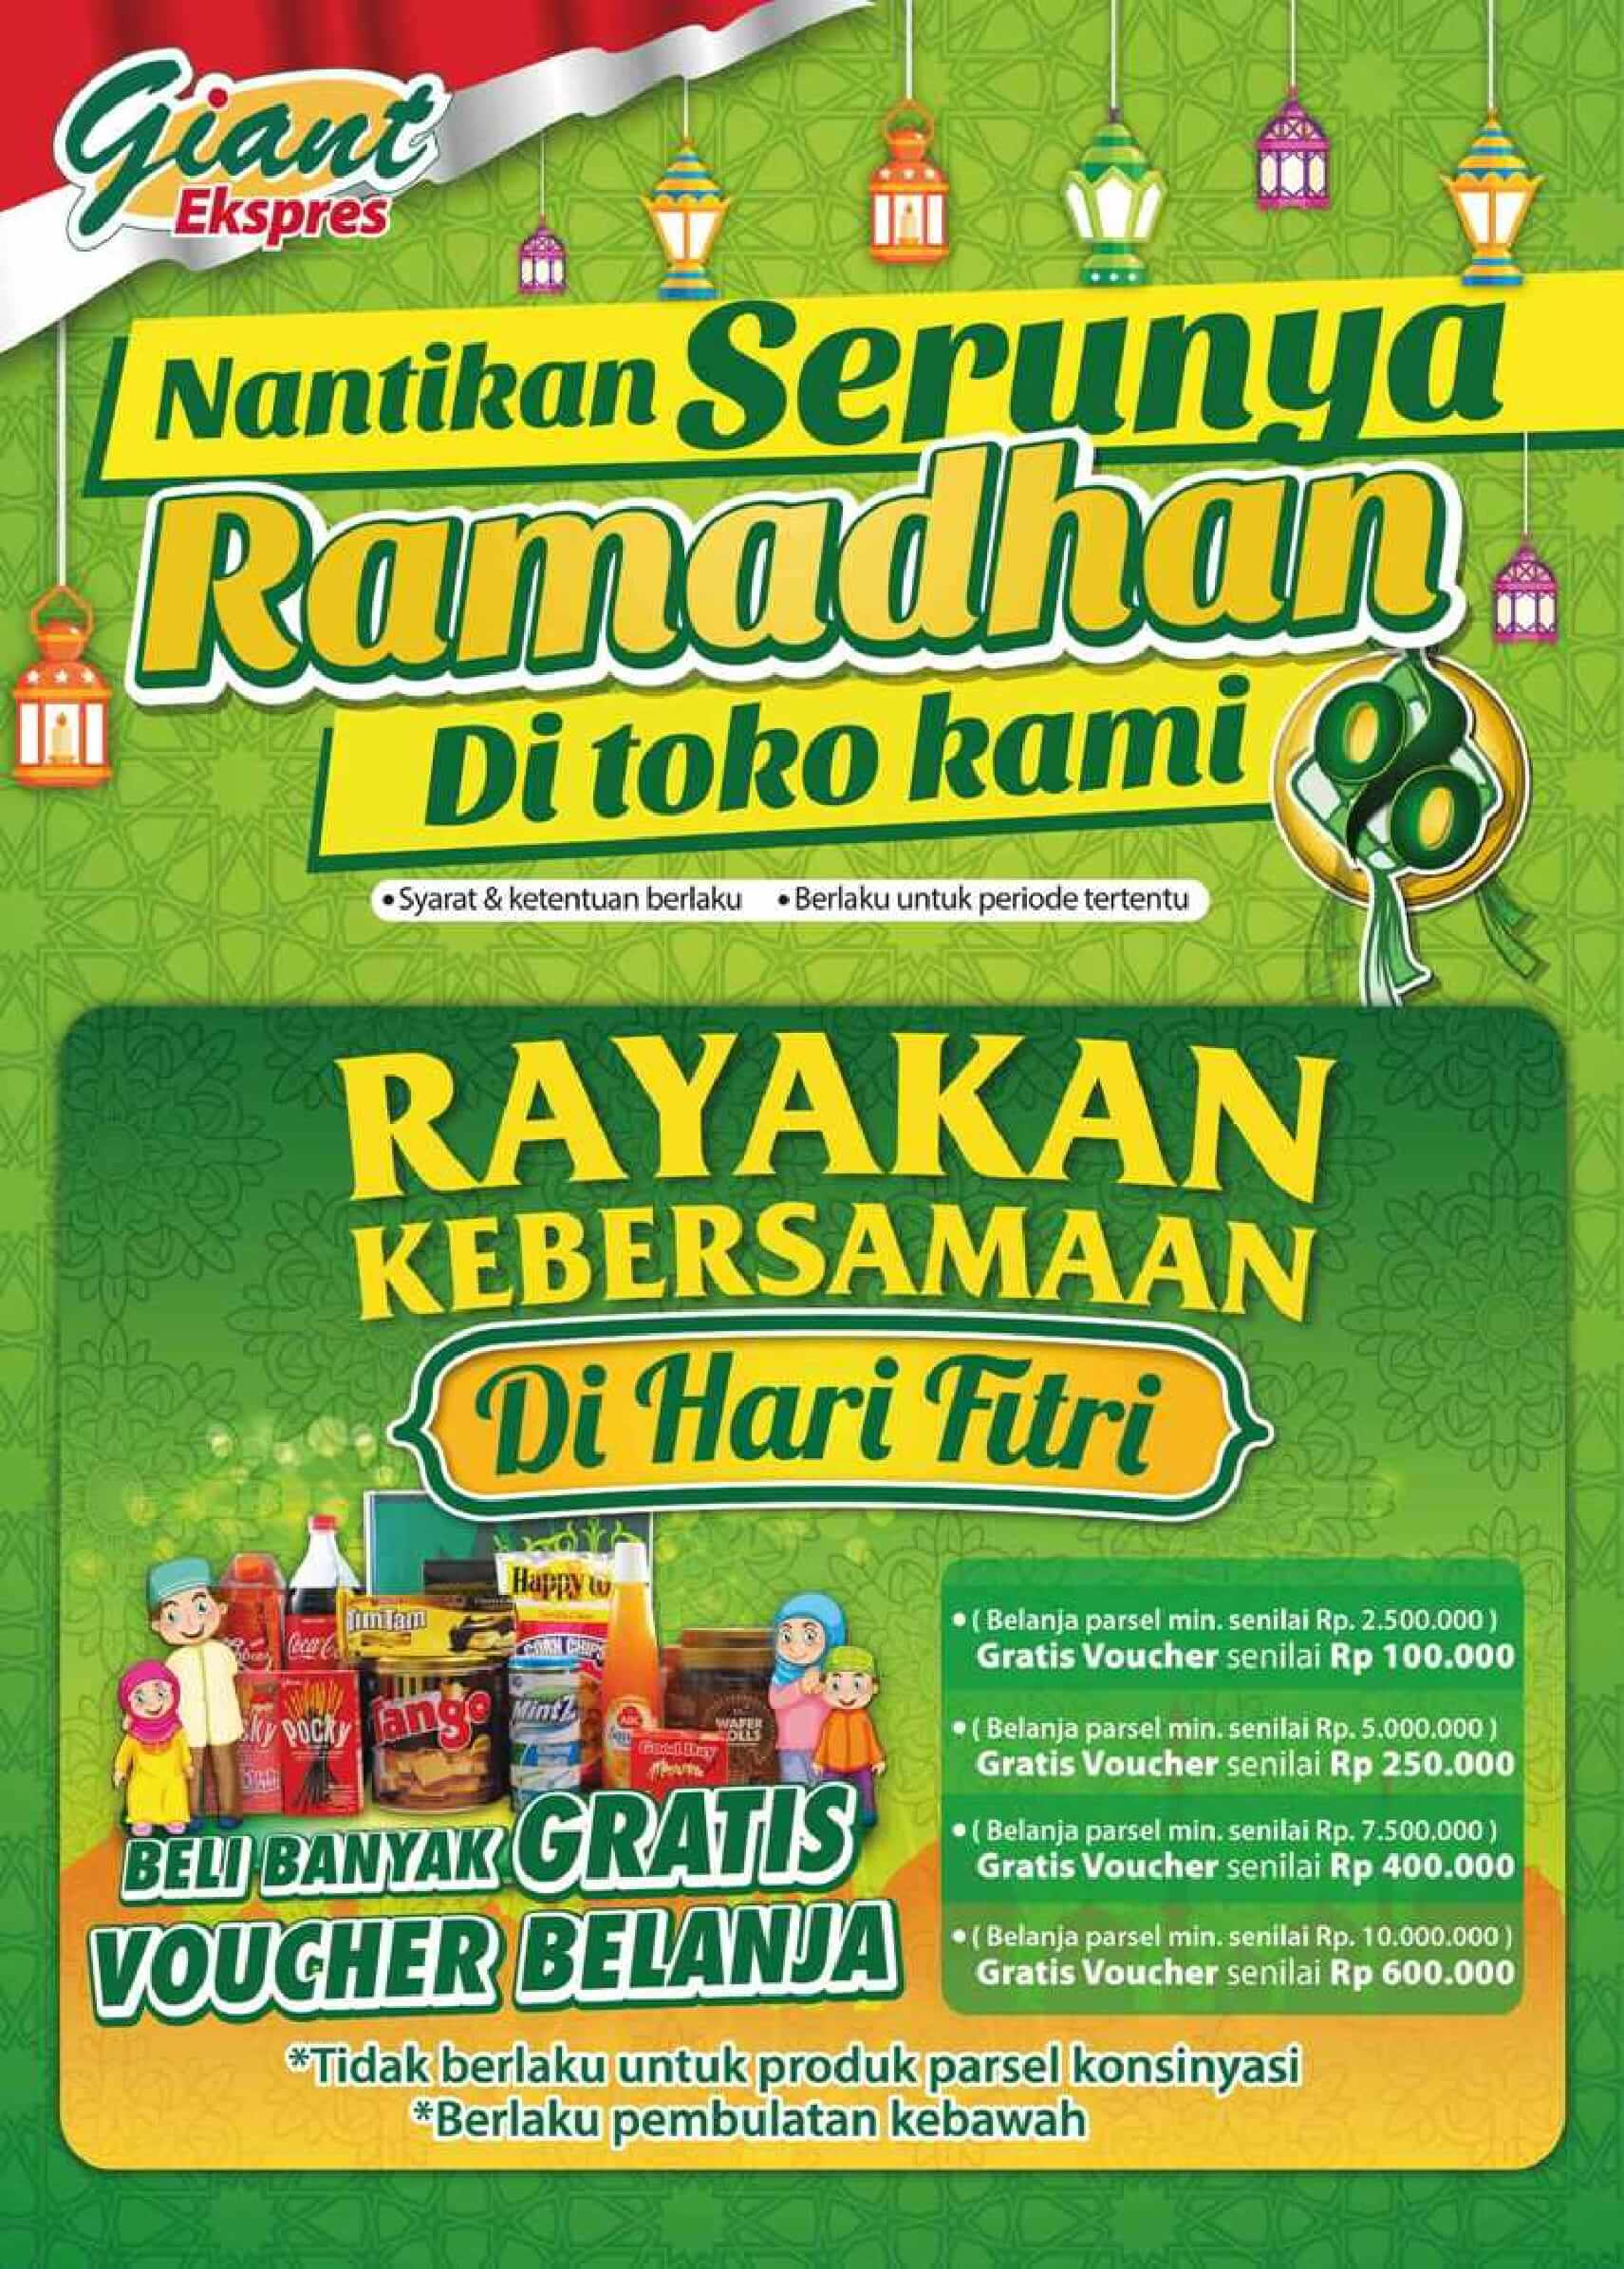 Giant Voucher 400 000 Daftar Harga Terlengkap Indonesia Rp 500 Type To Search Item In This Catalogue